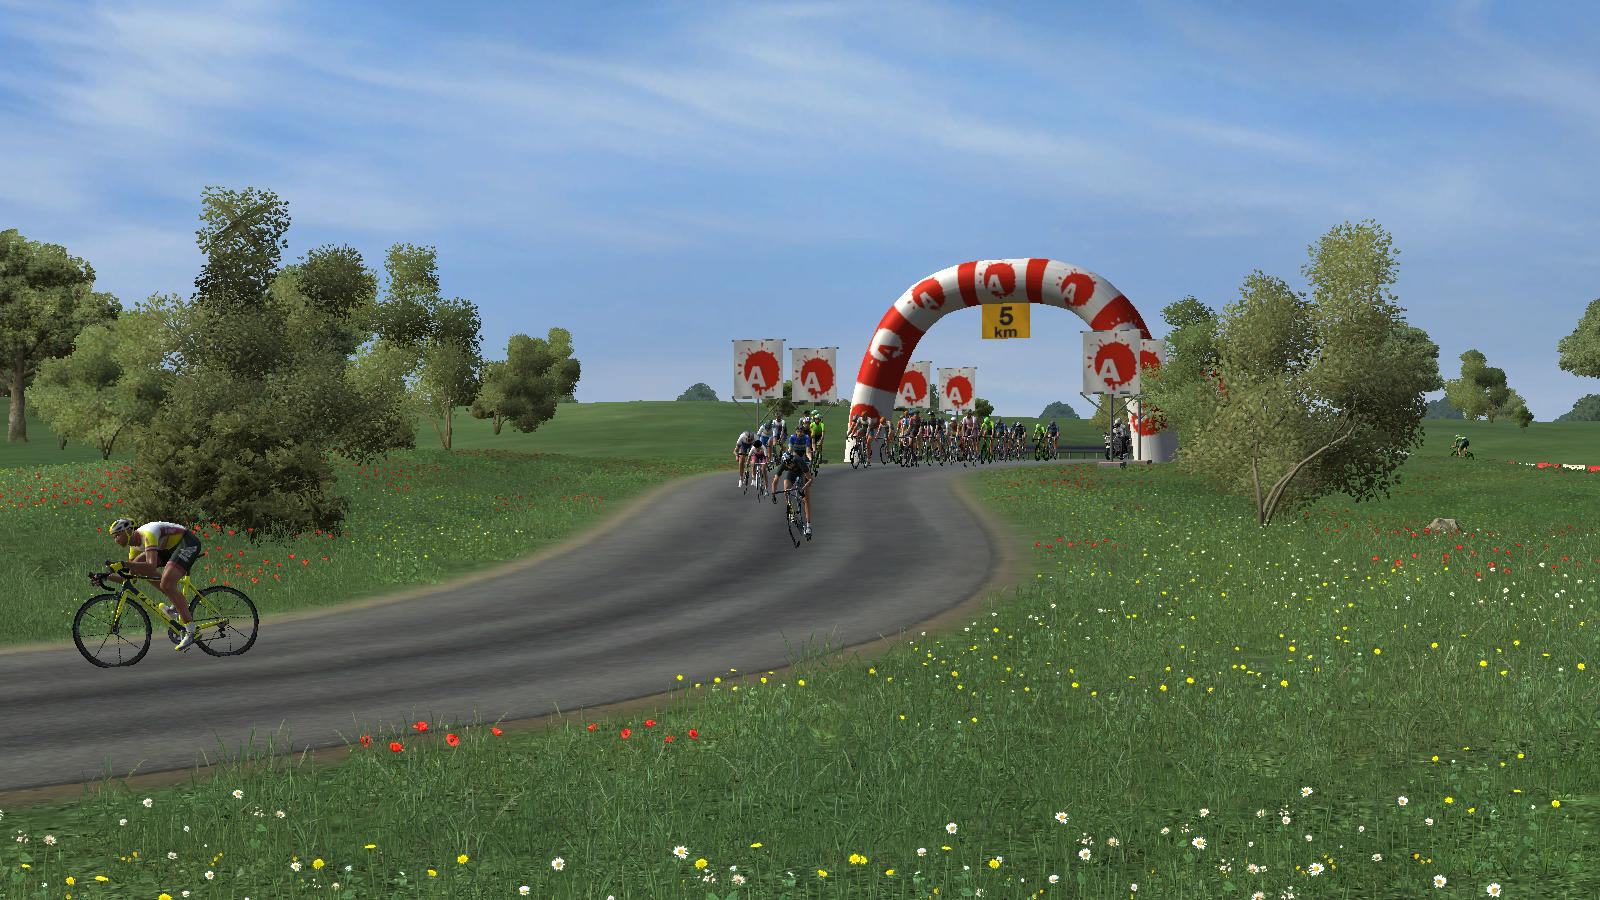 pcmdaily.com/images/mg/2019/Races/PTHC/Rheden/35.jpg